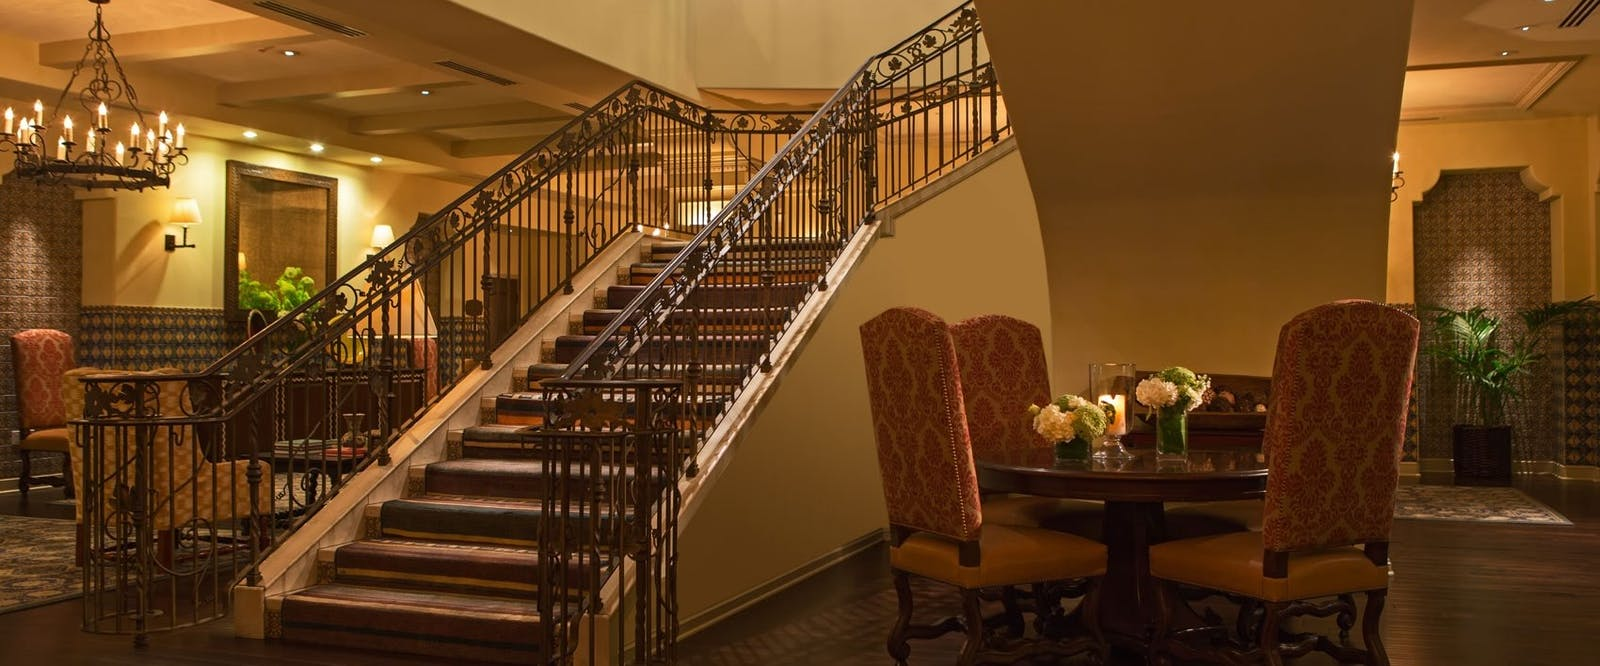 Grand Staircase at Kimpton Canary Hotel, Santa Barbara